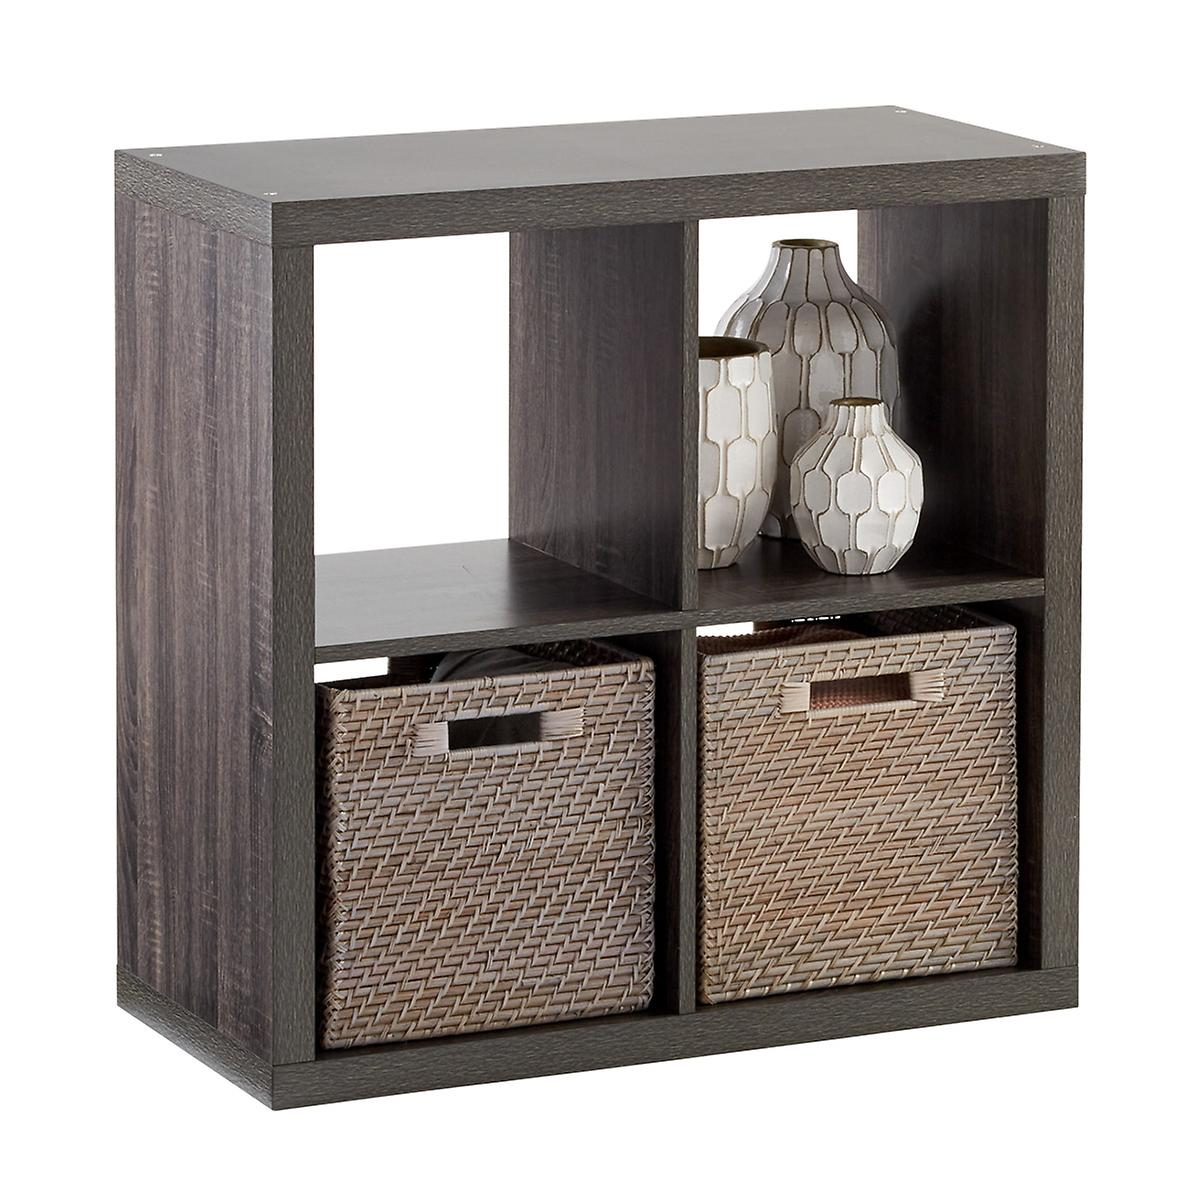 Weathered Smoke 4-Cube Cubby Shelving